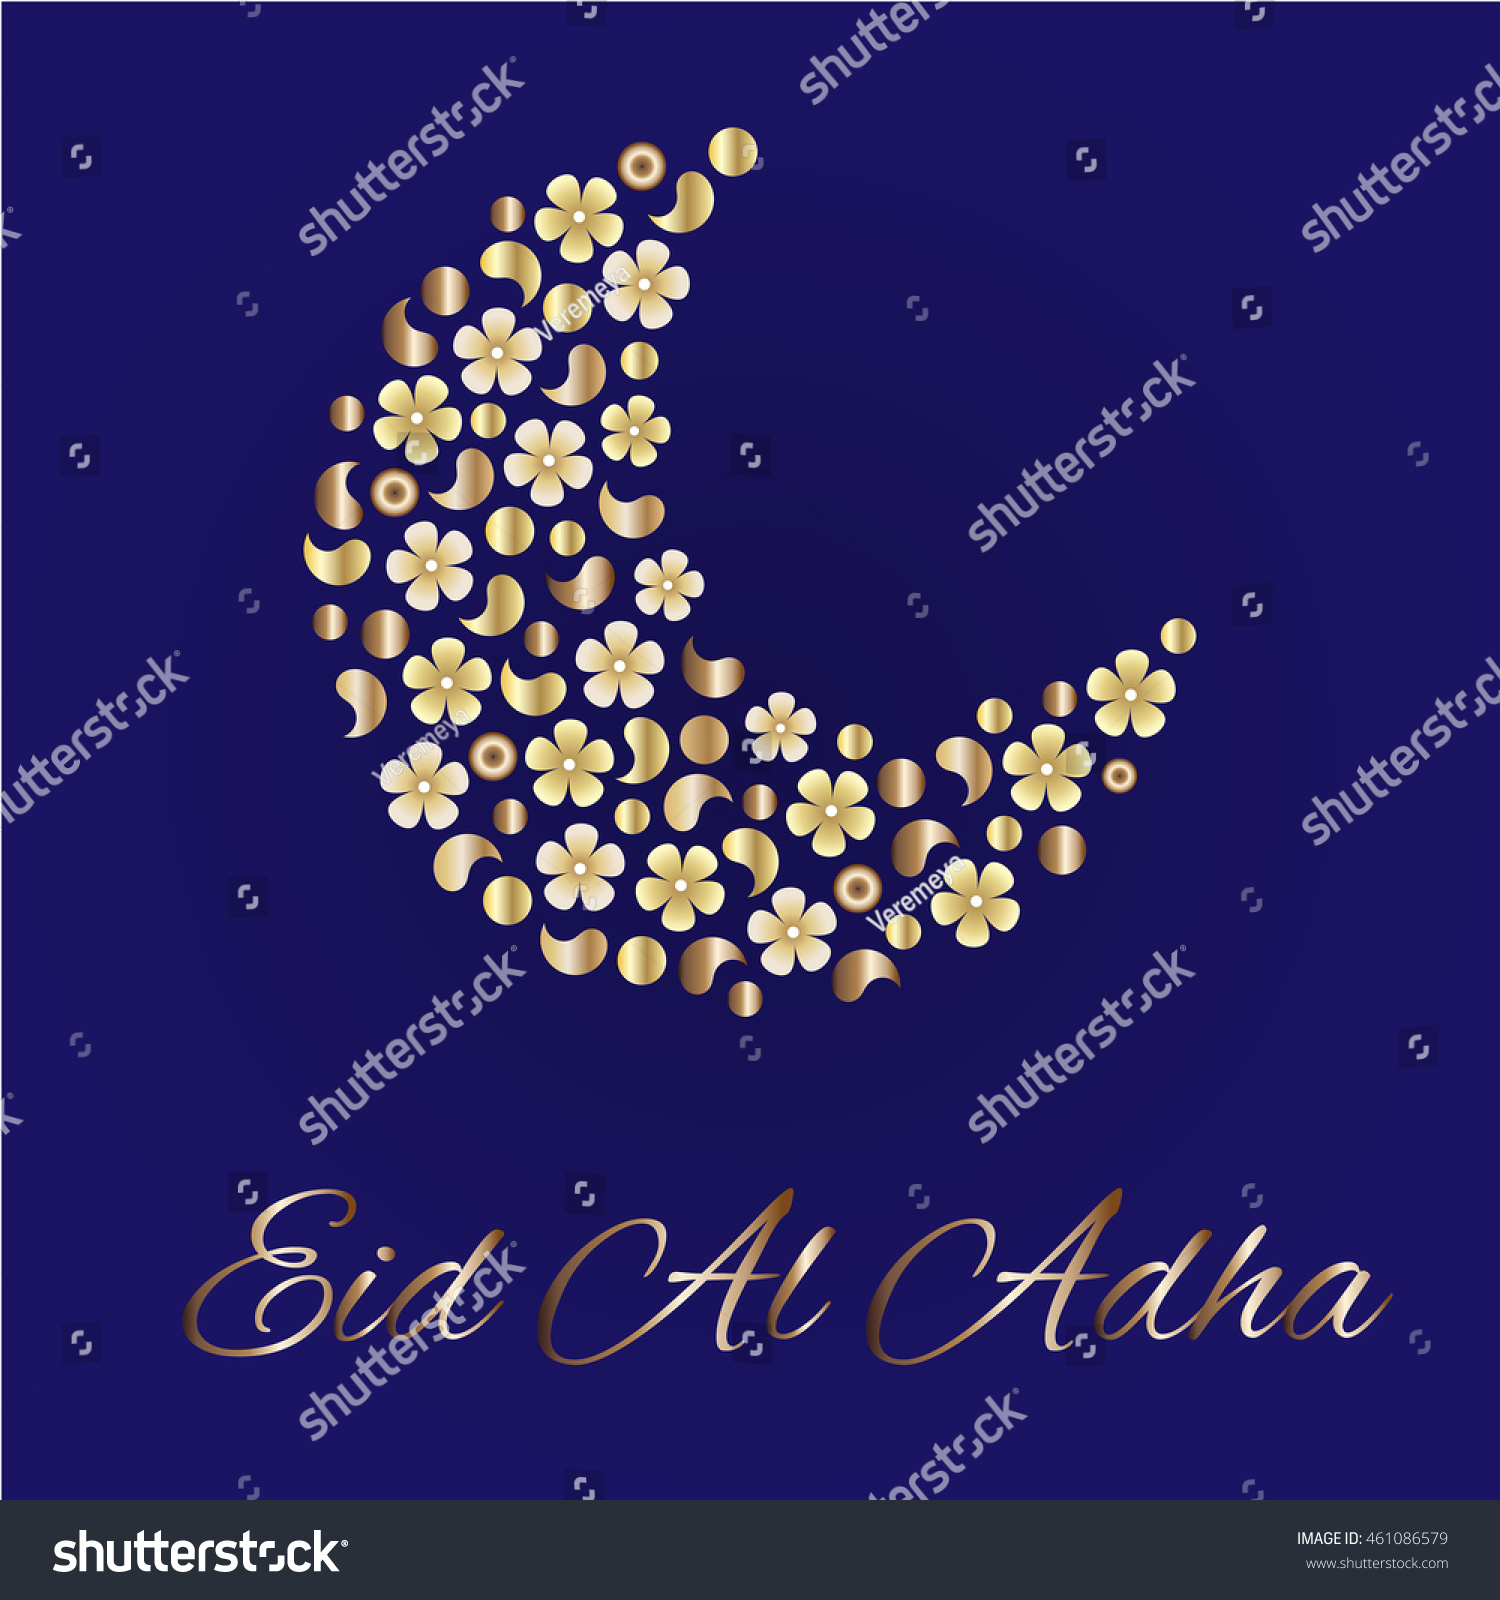 Eid Greetings Arabic Holiday Islamic Greeting Stock Vector Royalty